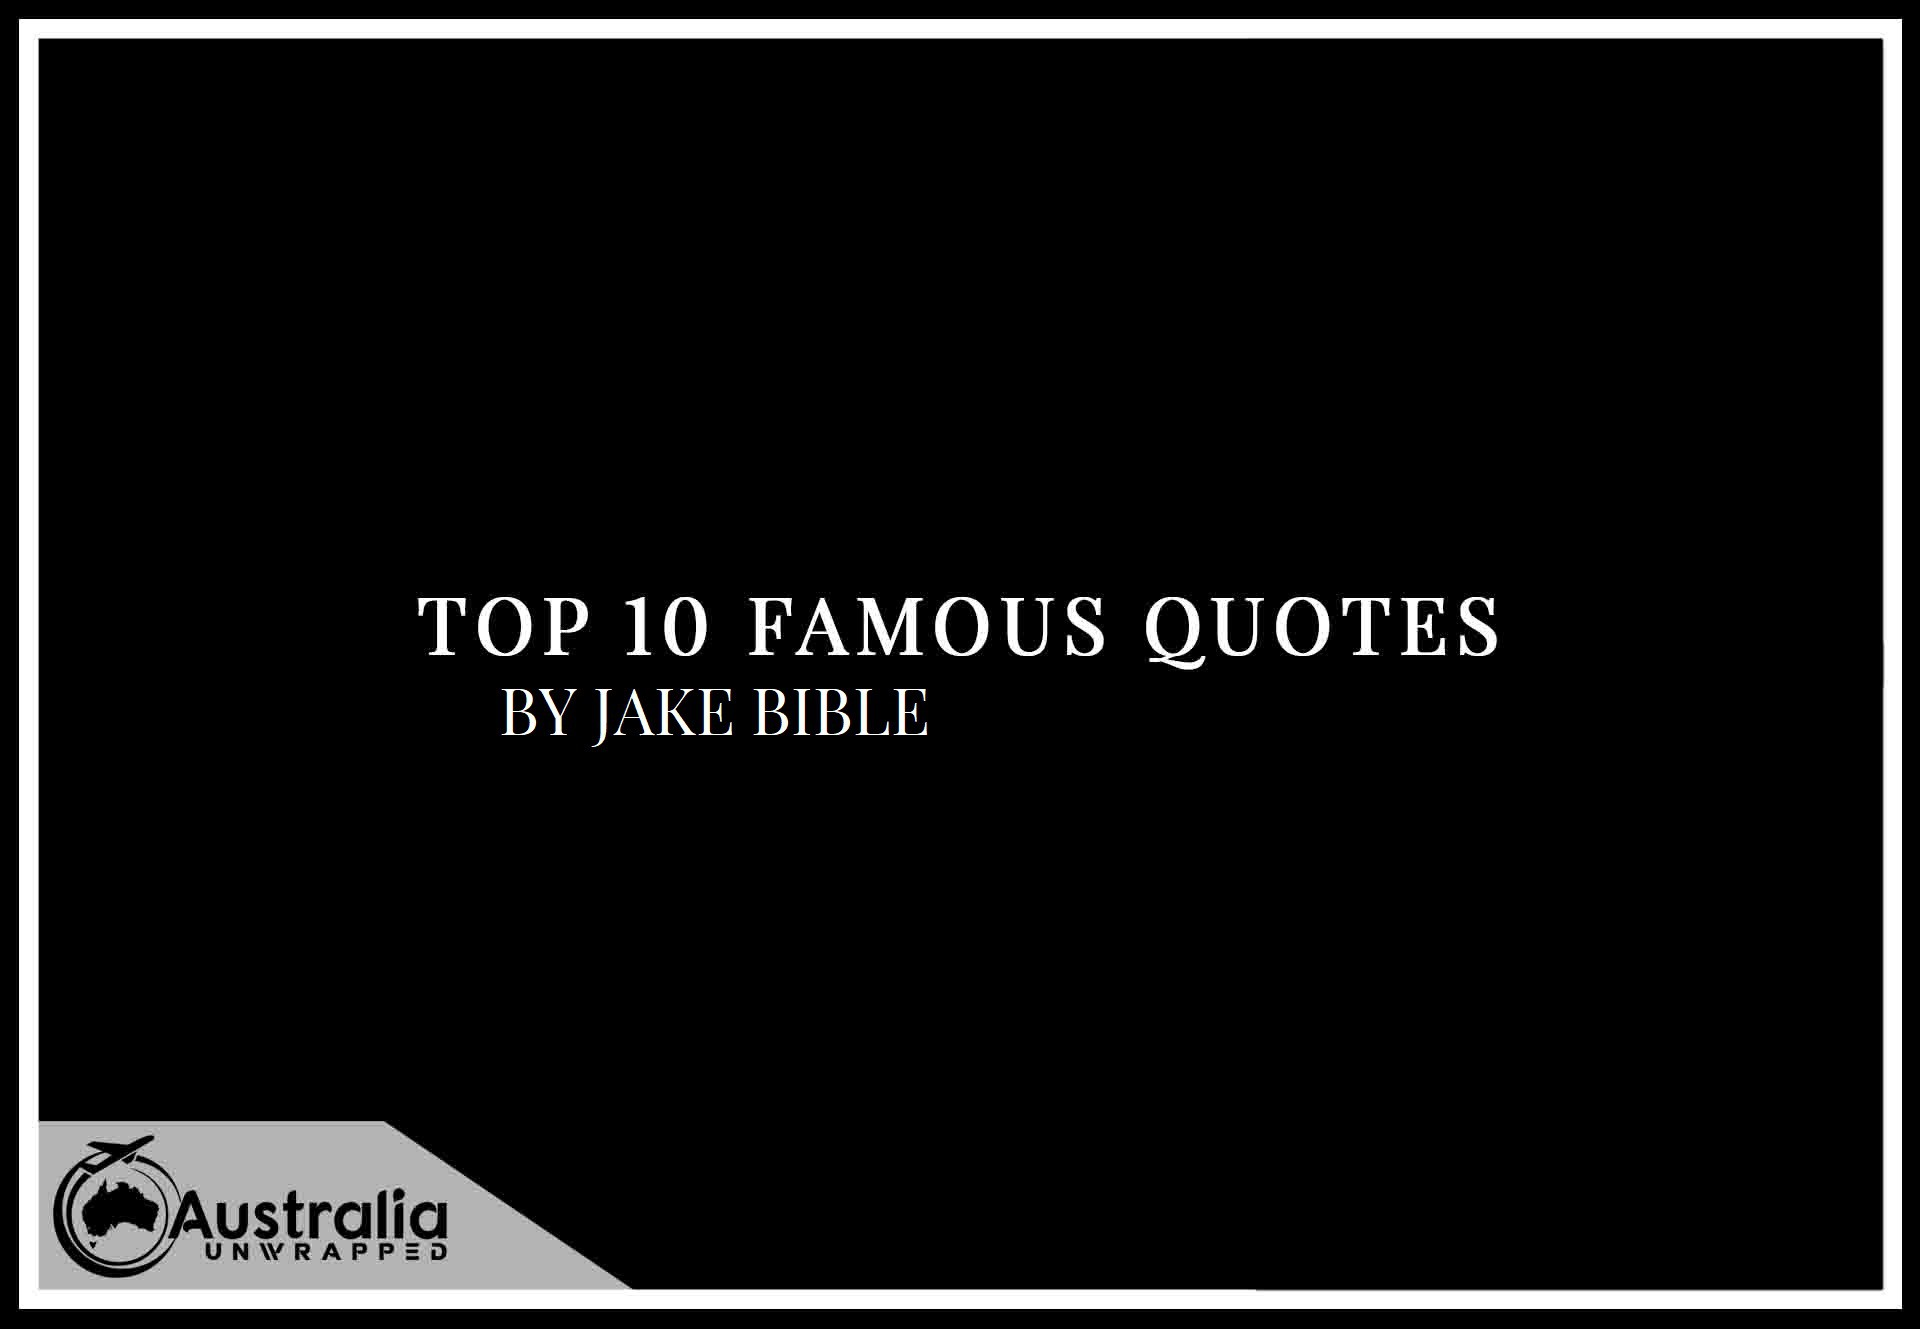 Top 10 Famous Quotes by Author Bible